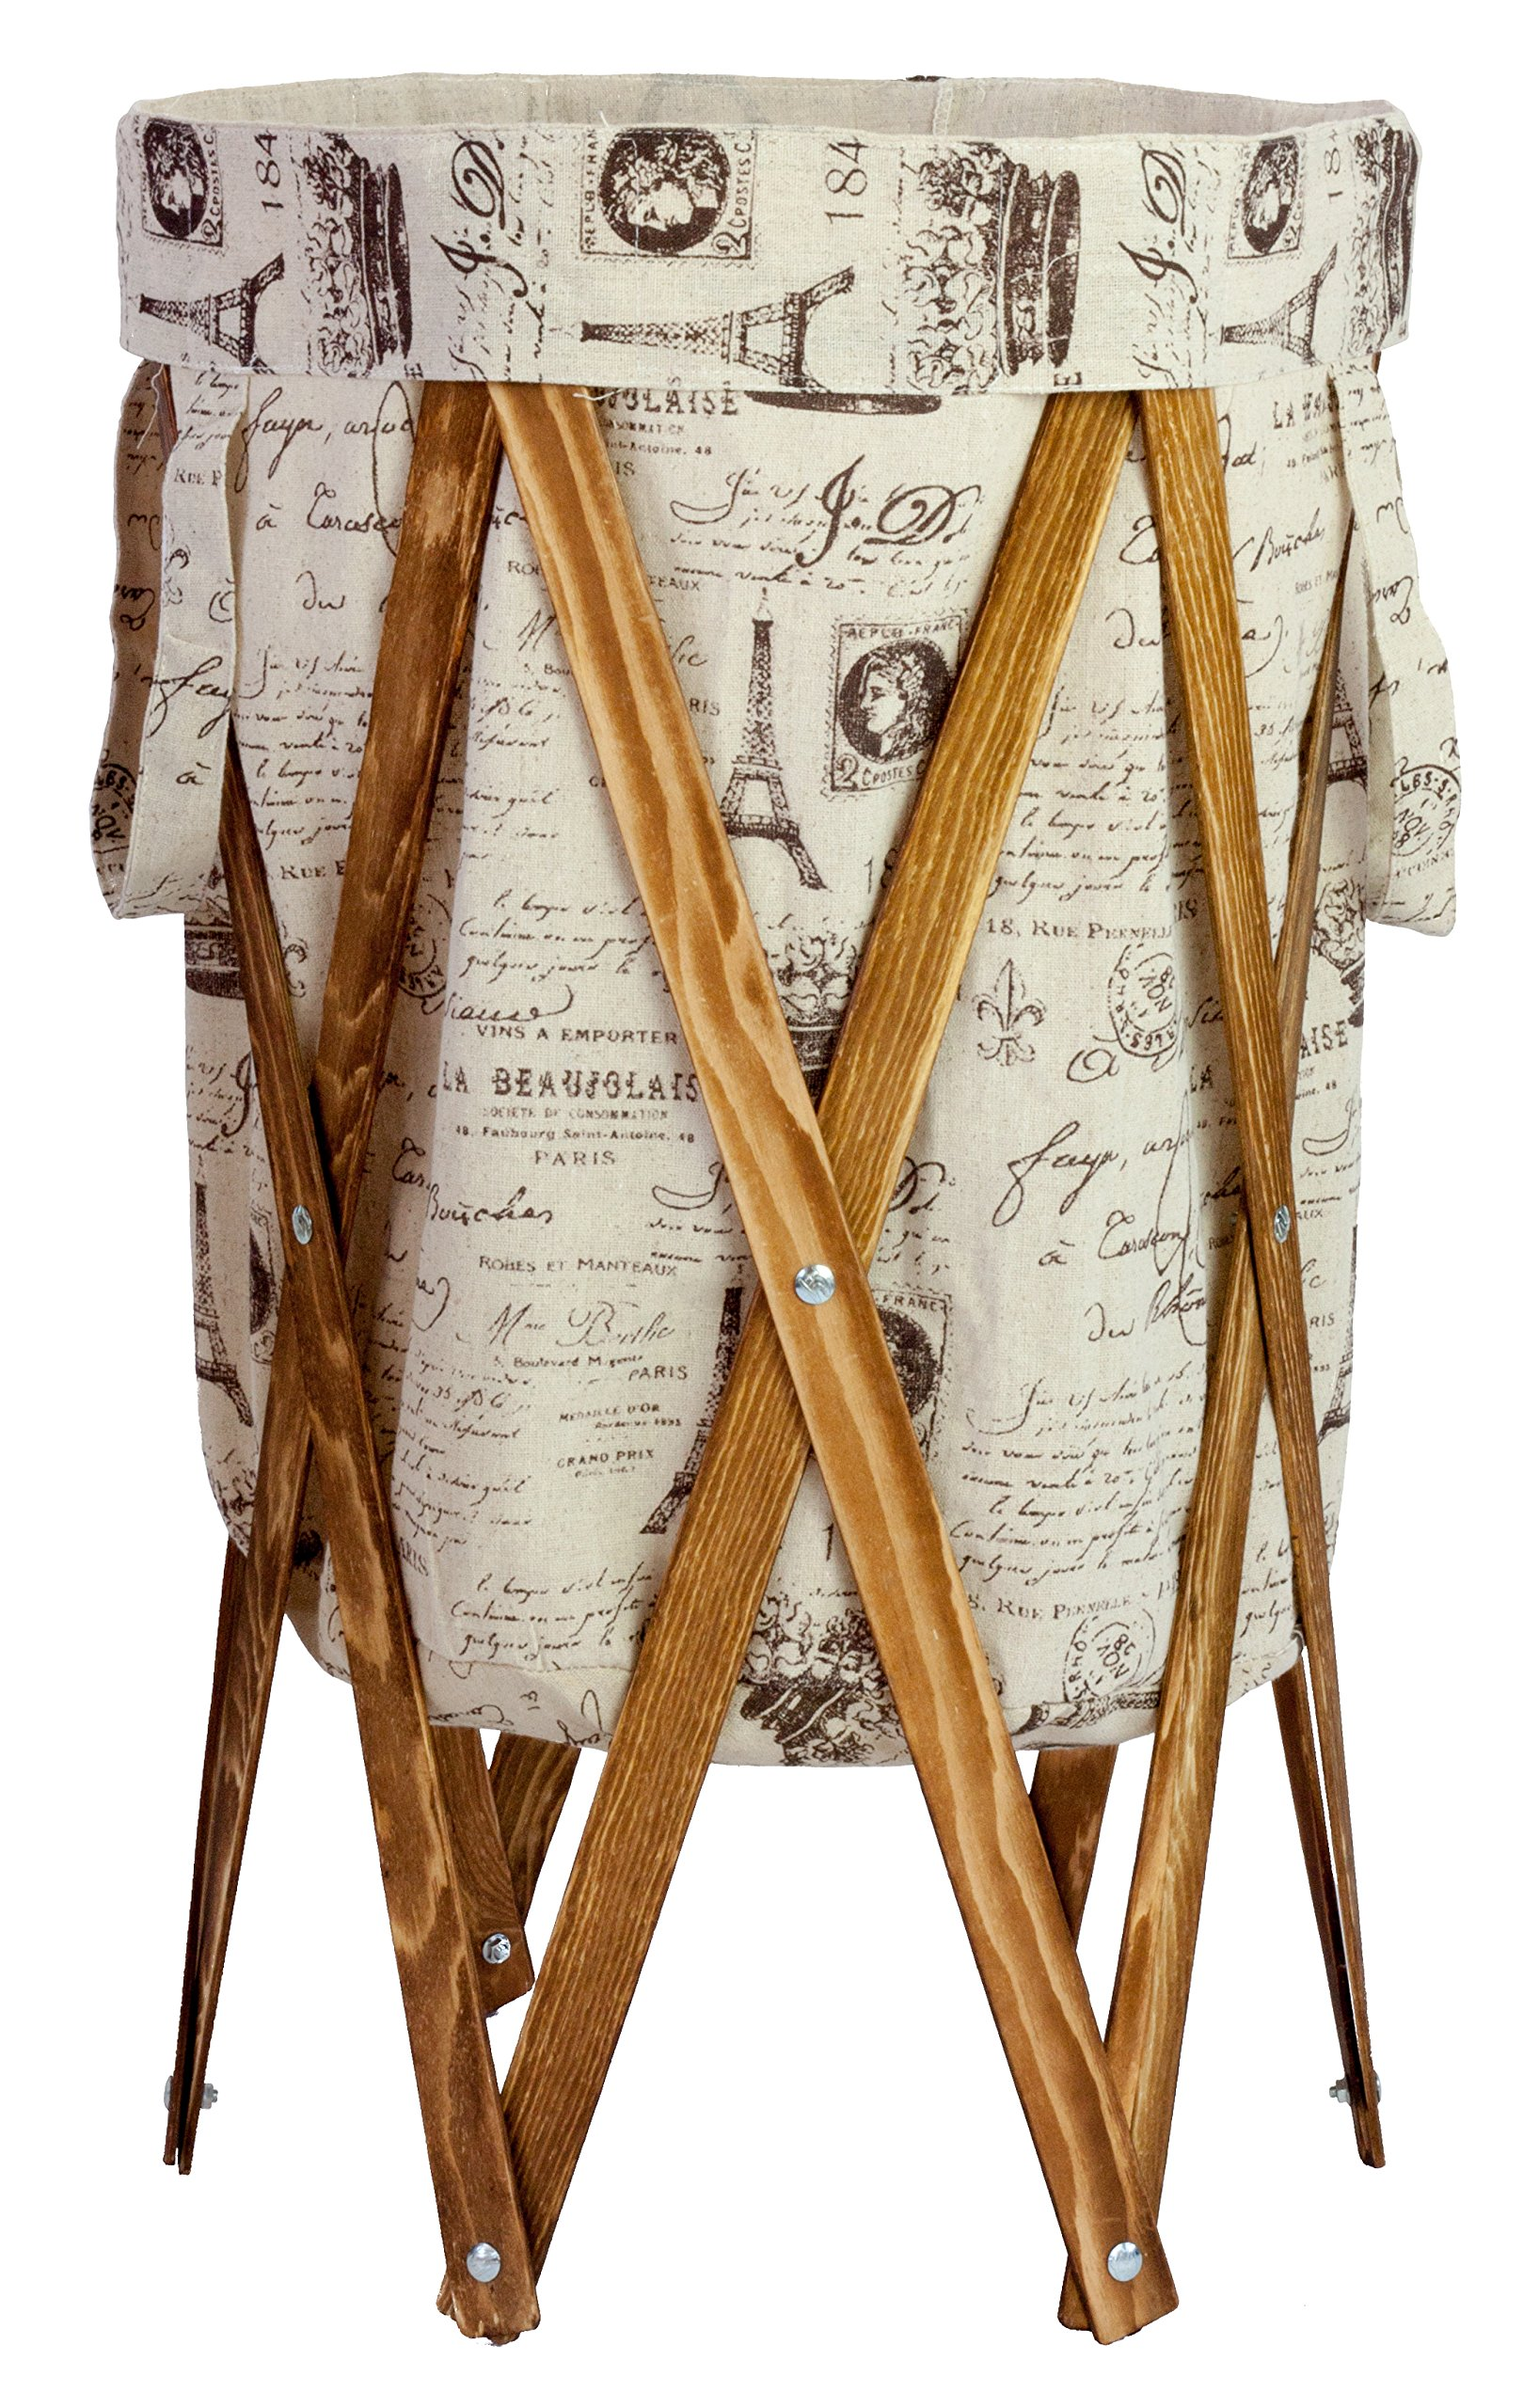 MAX + RAE Collapsible Laundry Hamper with Stained Wood Frame | Dirty Clothes Storage | Removable Fabric Bag with Handles, Easy to Carry and Clean | Nursery, Kids Bedroom, Bathroom (French)